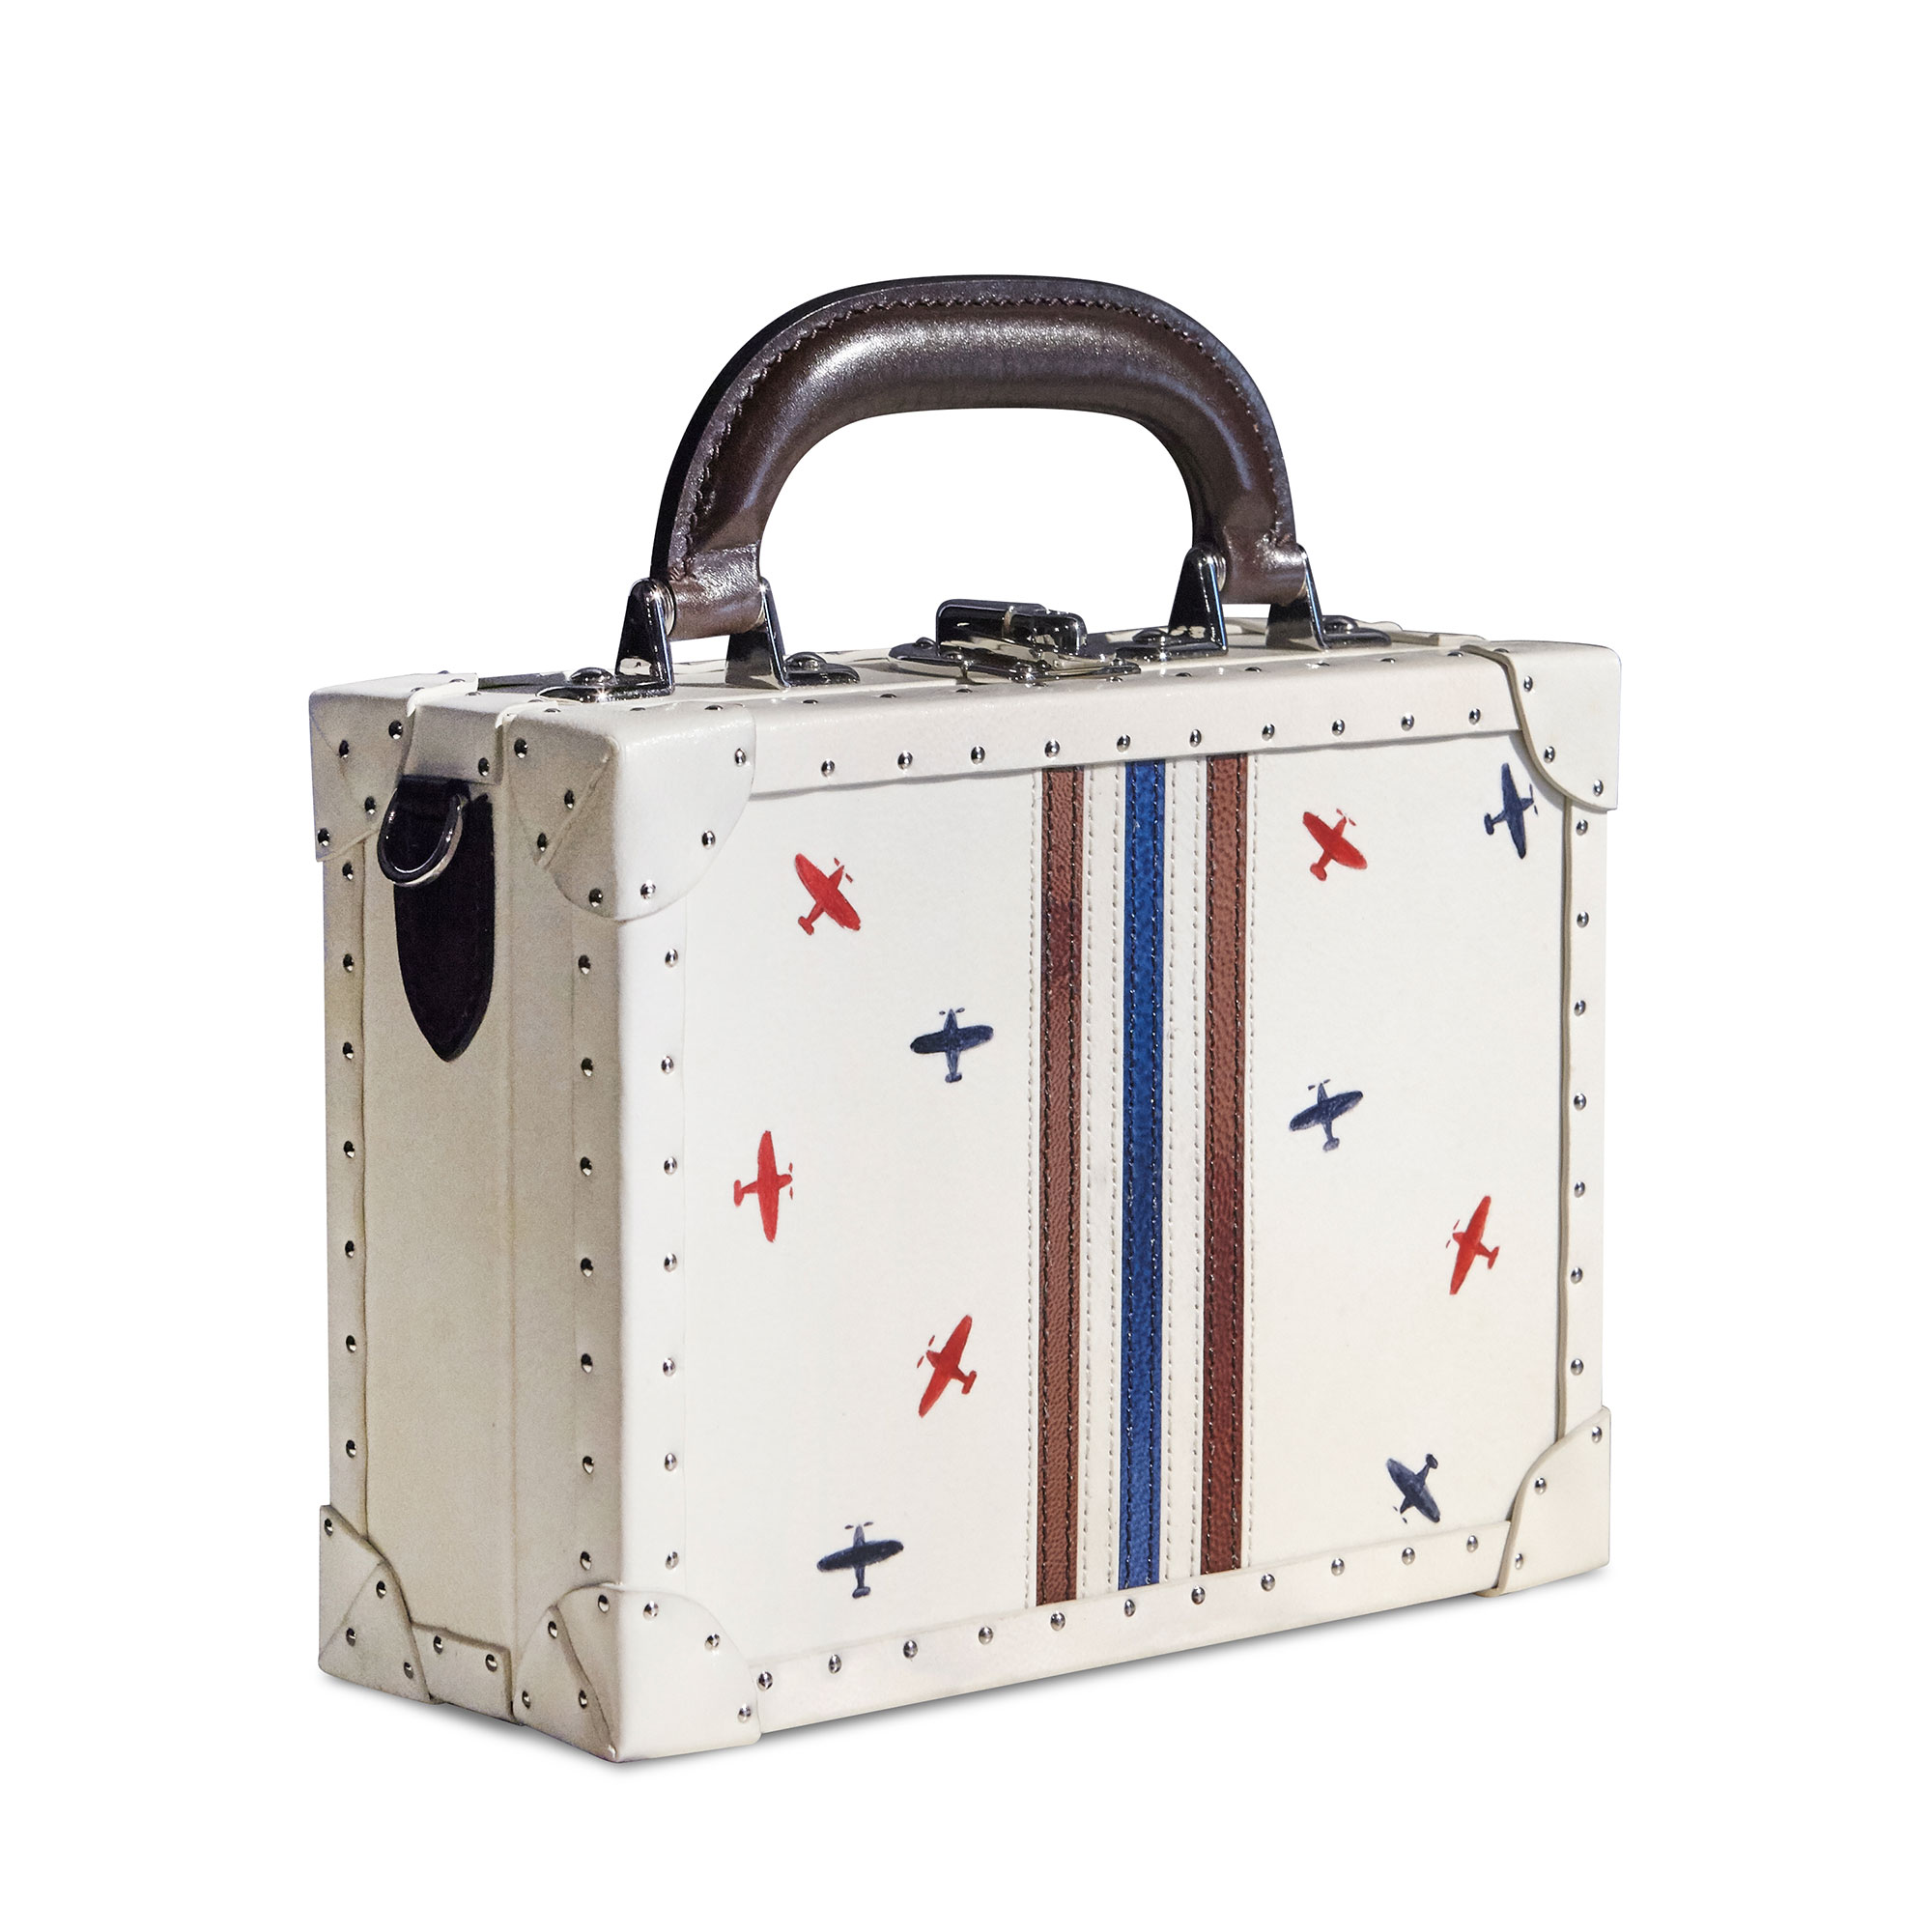 Navy and brown stripes with hand-painted airplanes french calf parchment Mini Squared Bertoncina bag by Bertoni 1949 02